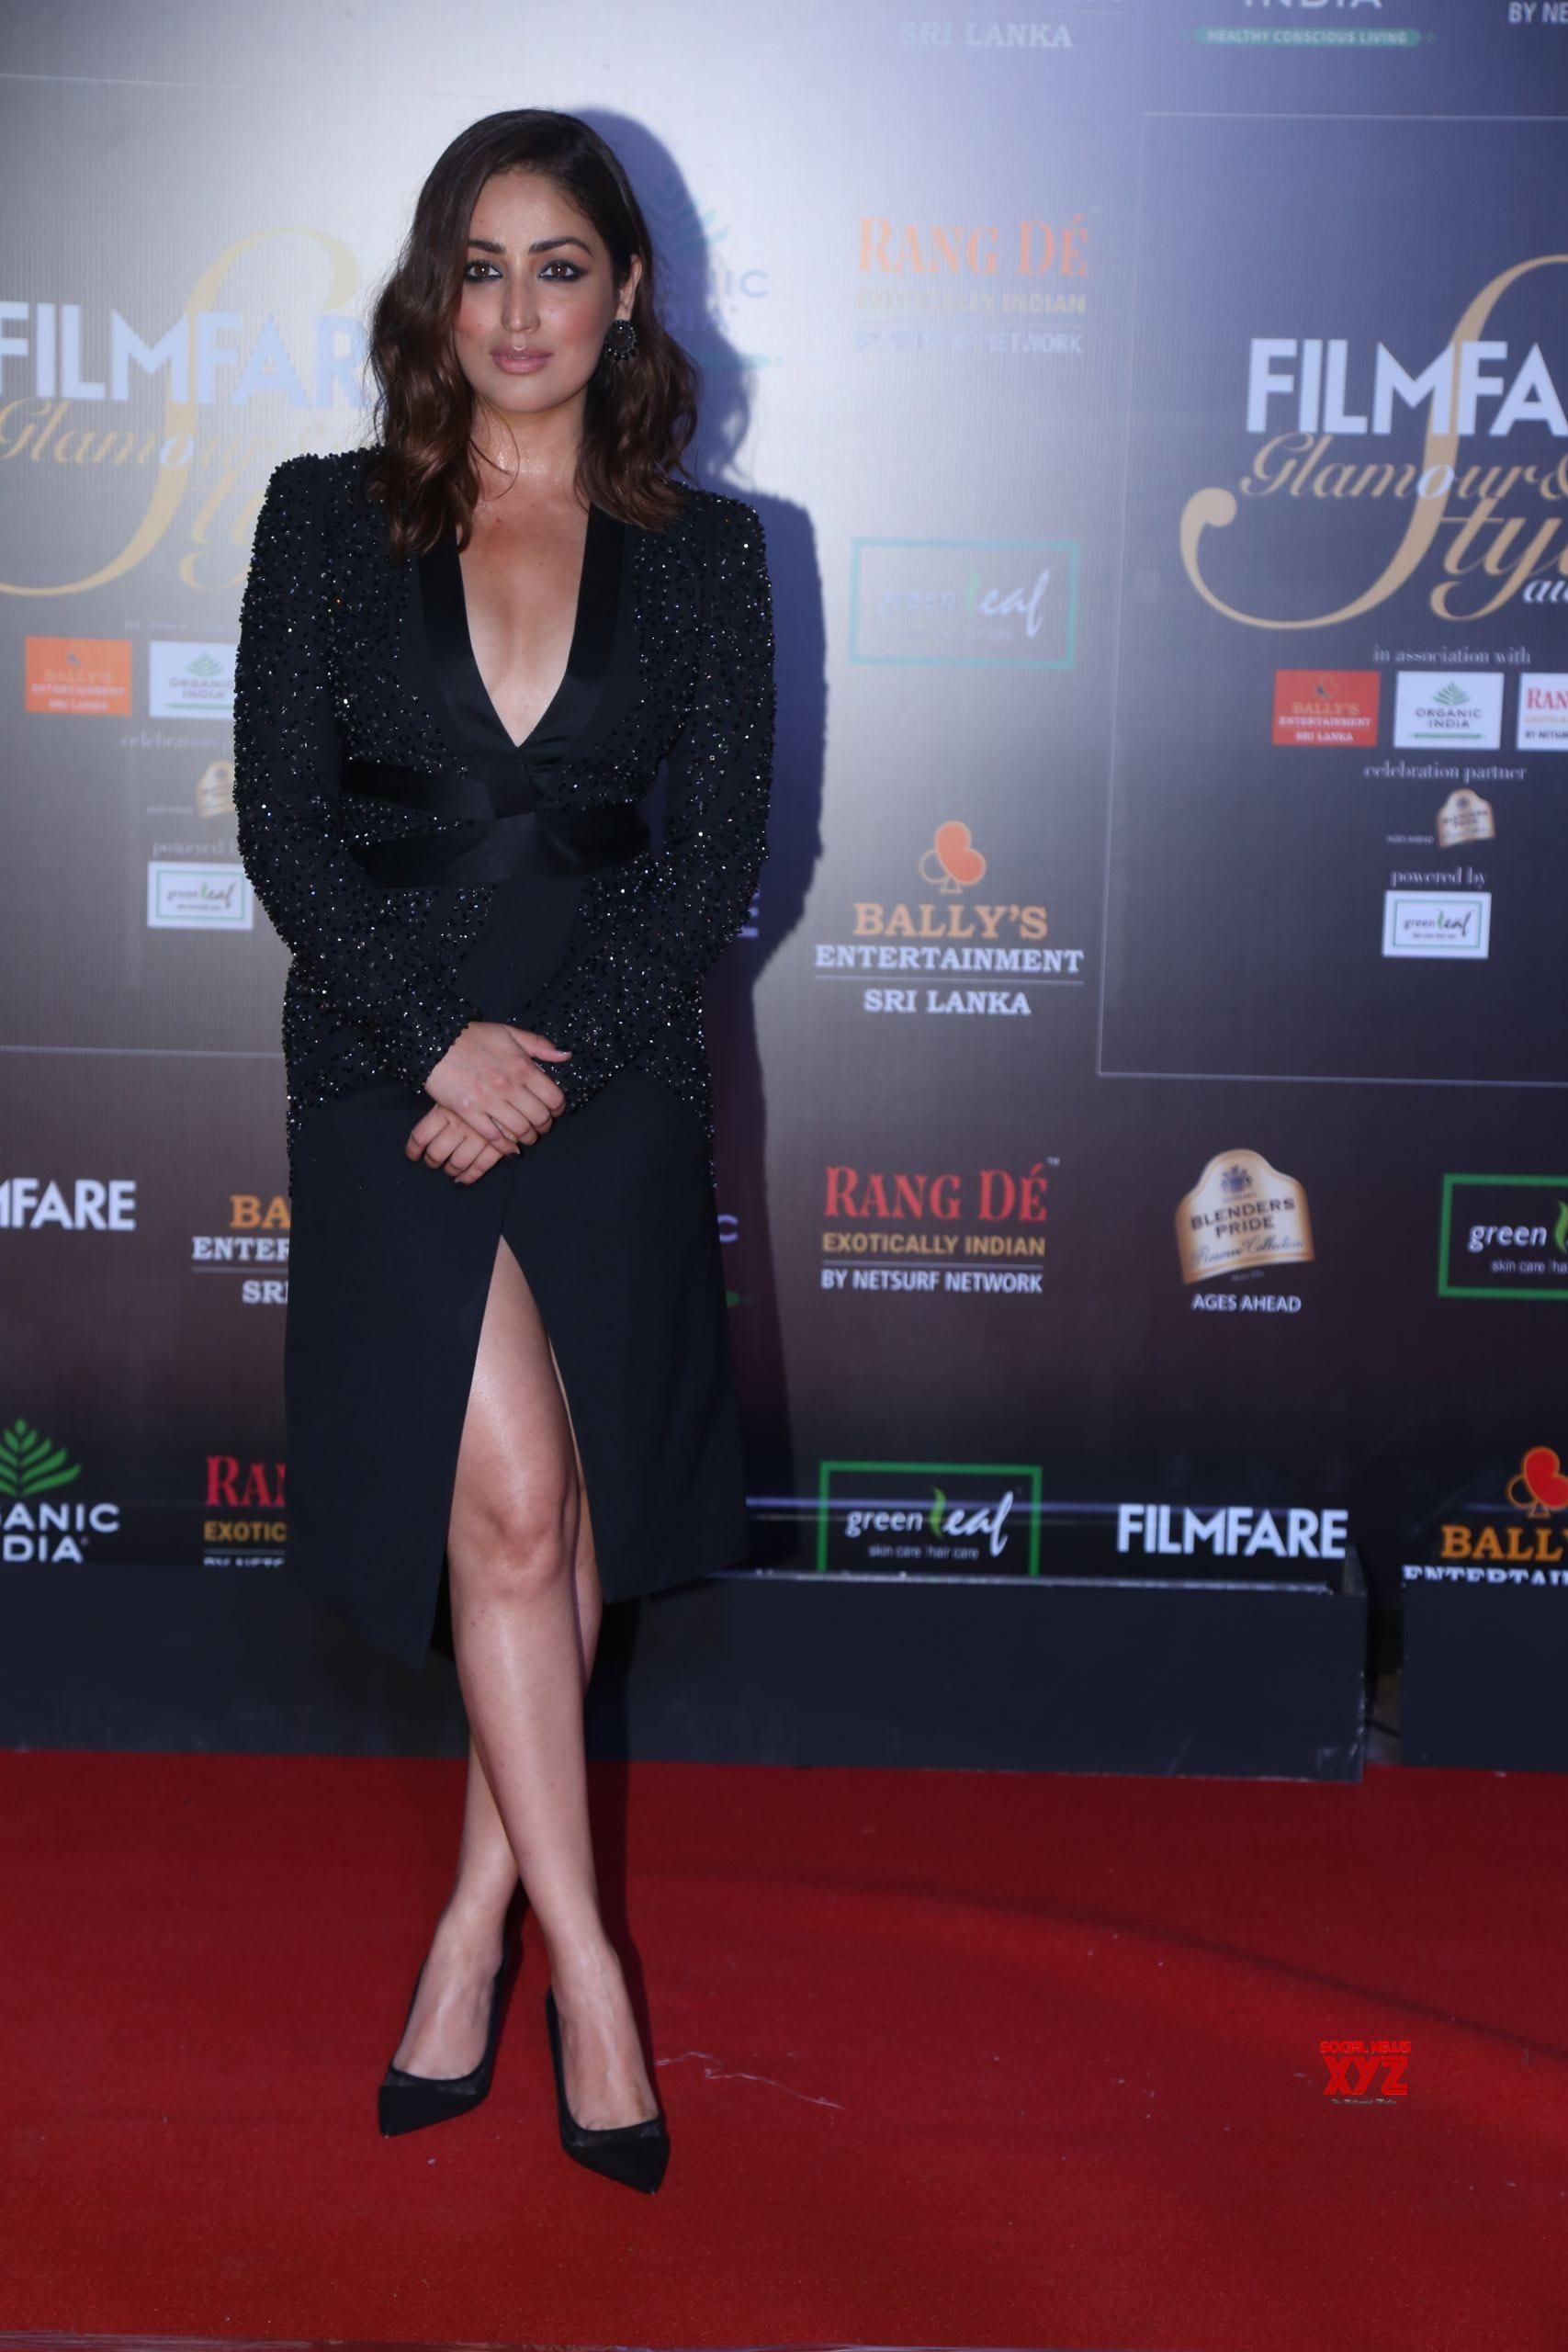 Actress Yami Gautam Hot HD Stills From Filmfare Glamour And Style Awards 2019 Red Carpet